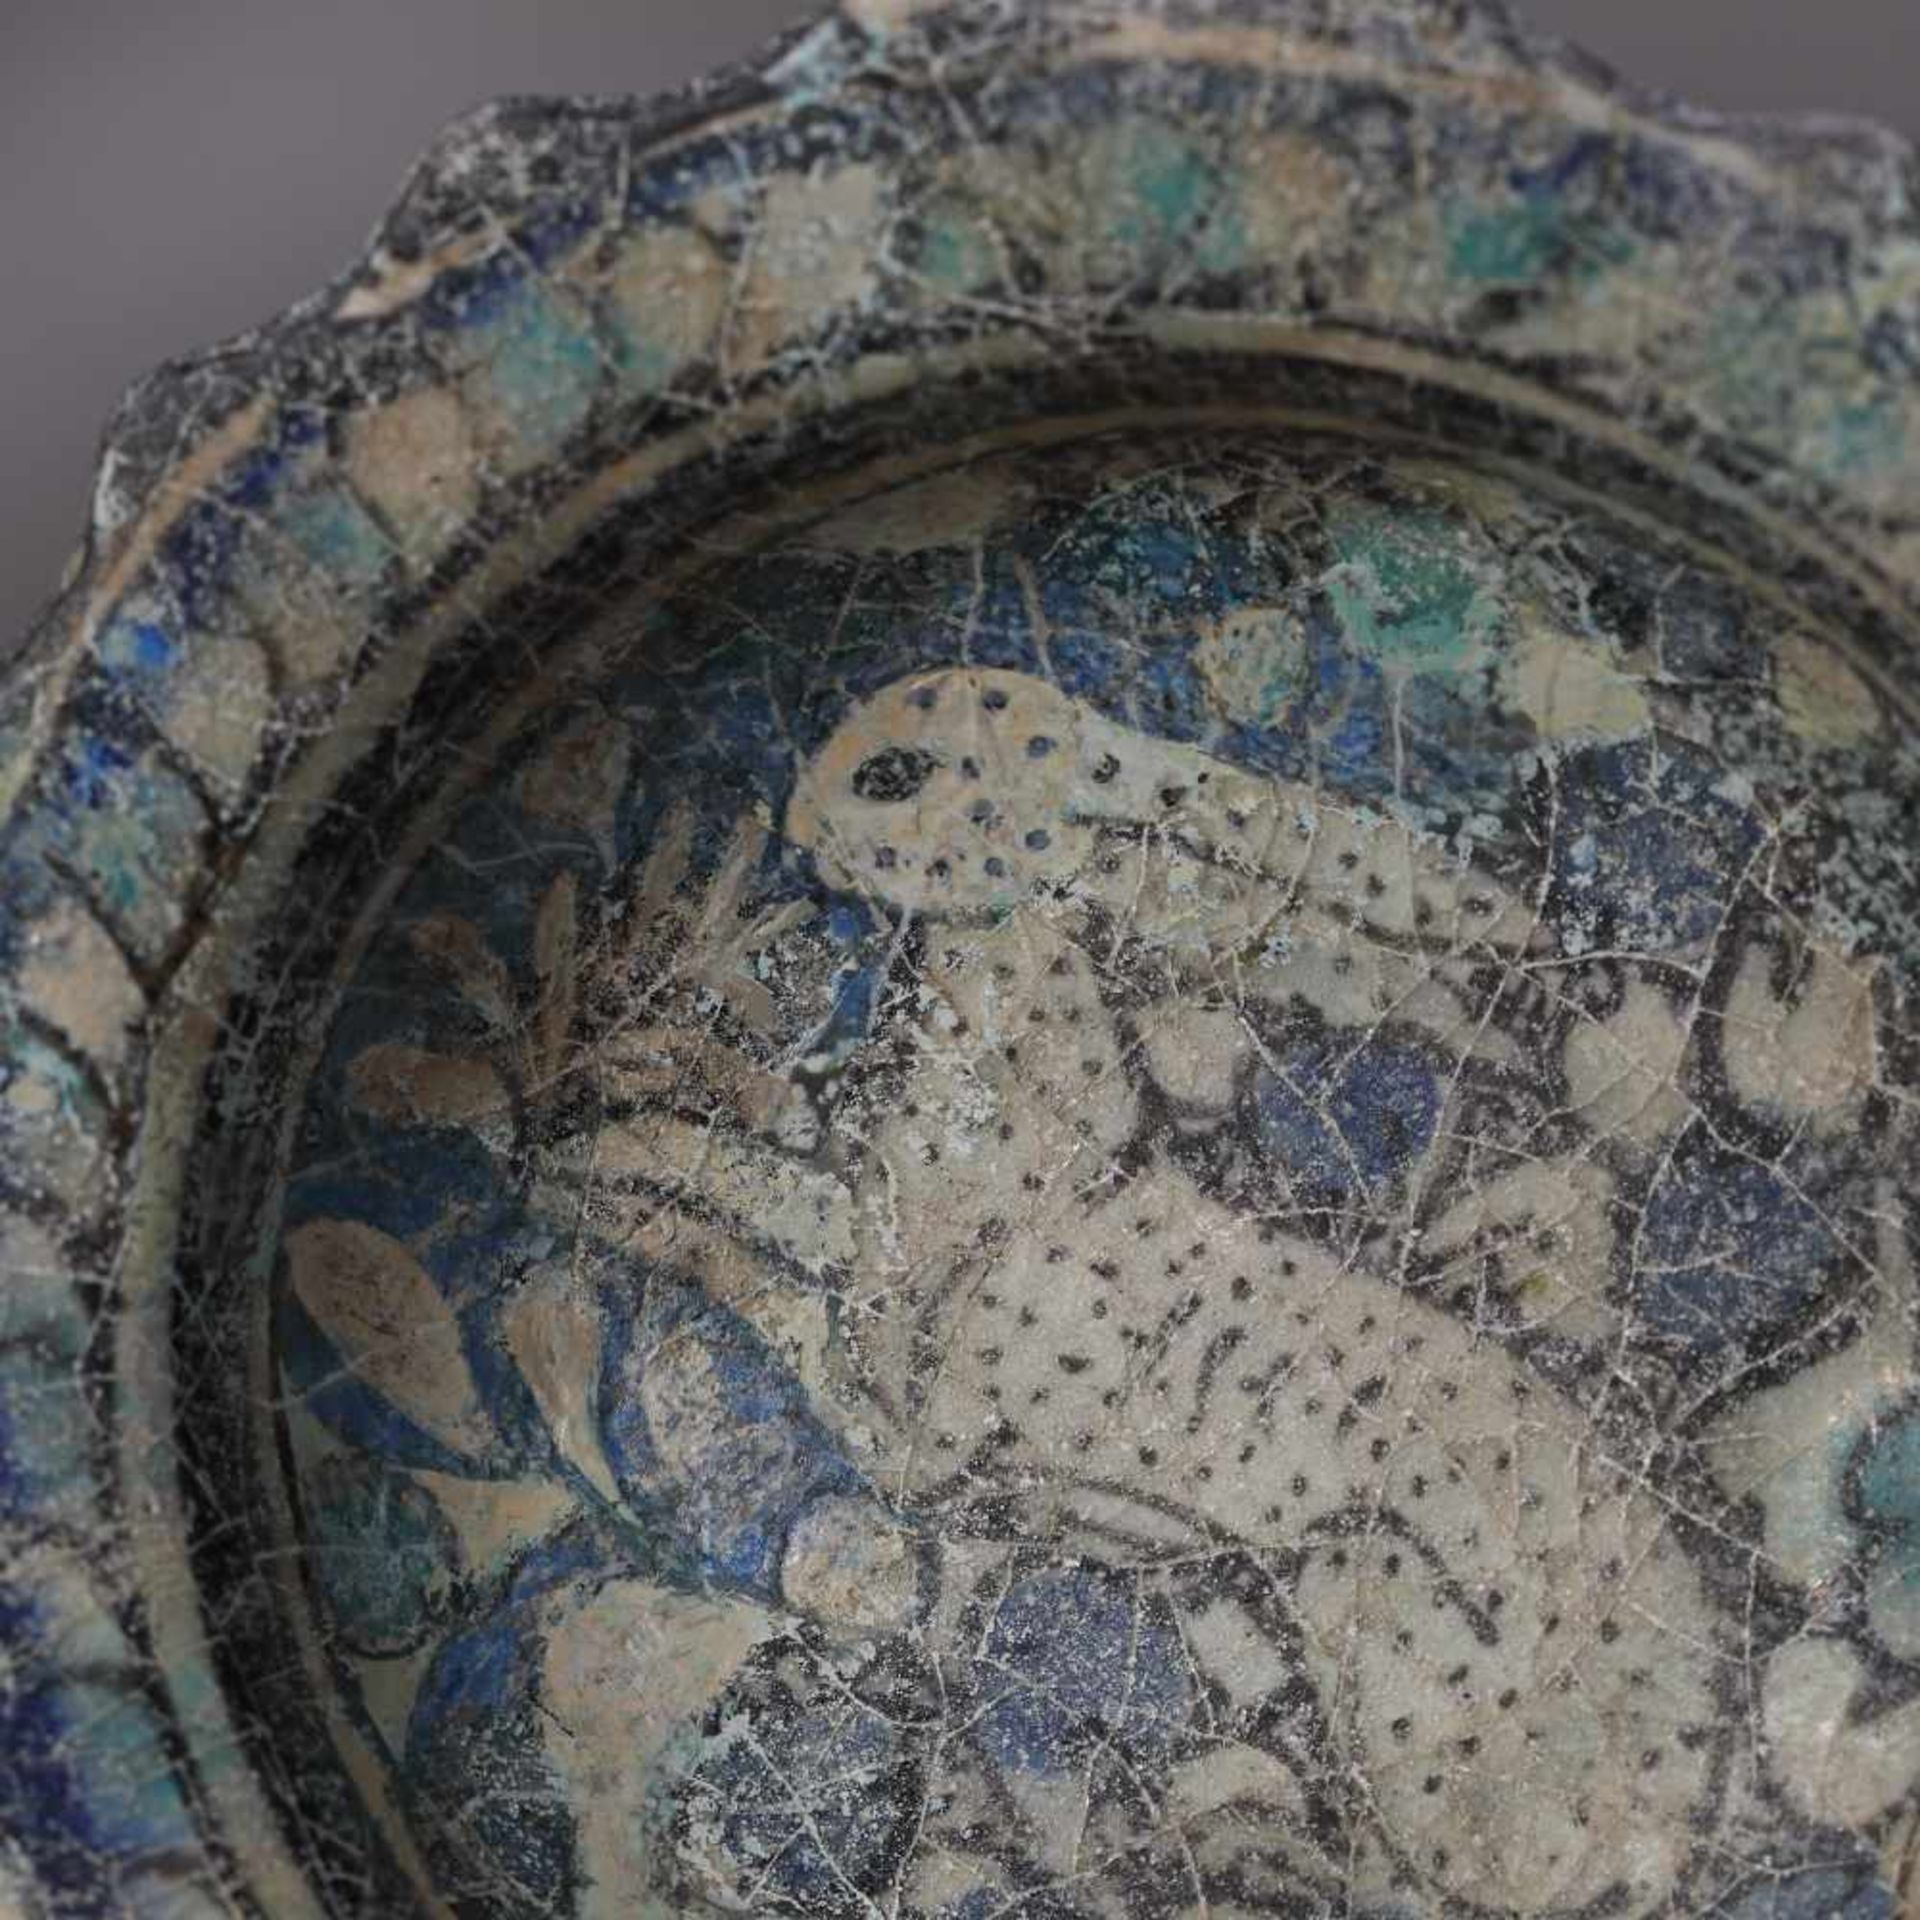 Glazed ceramic Persian bowl, decorated with hunting scene (a rabbit running), approx. 850 years old, - Bild 3 aus 5